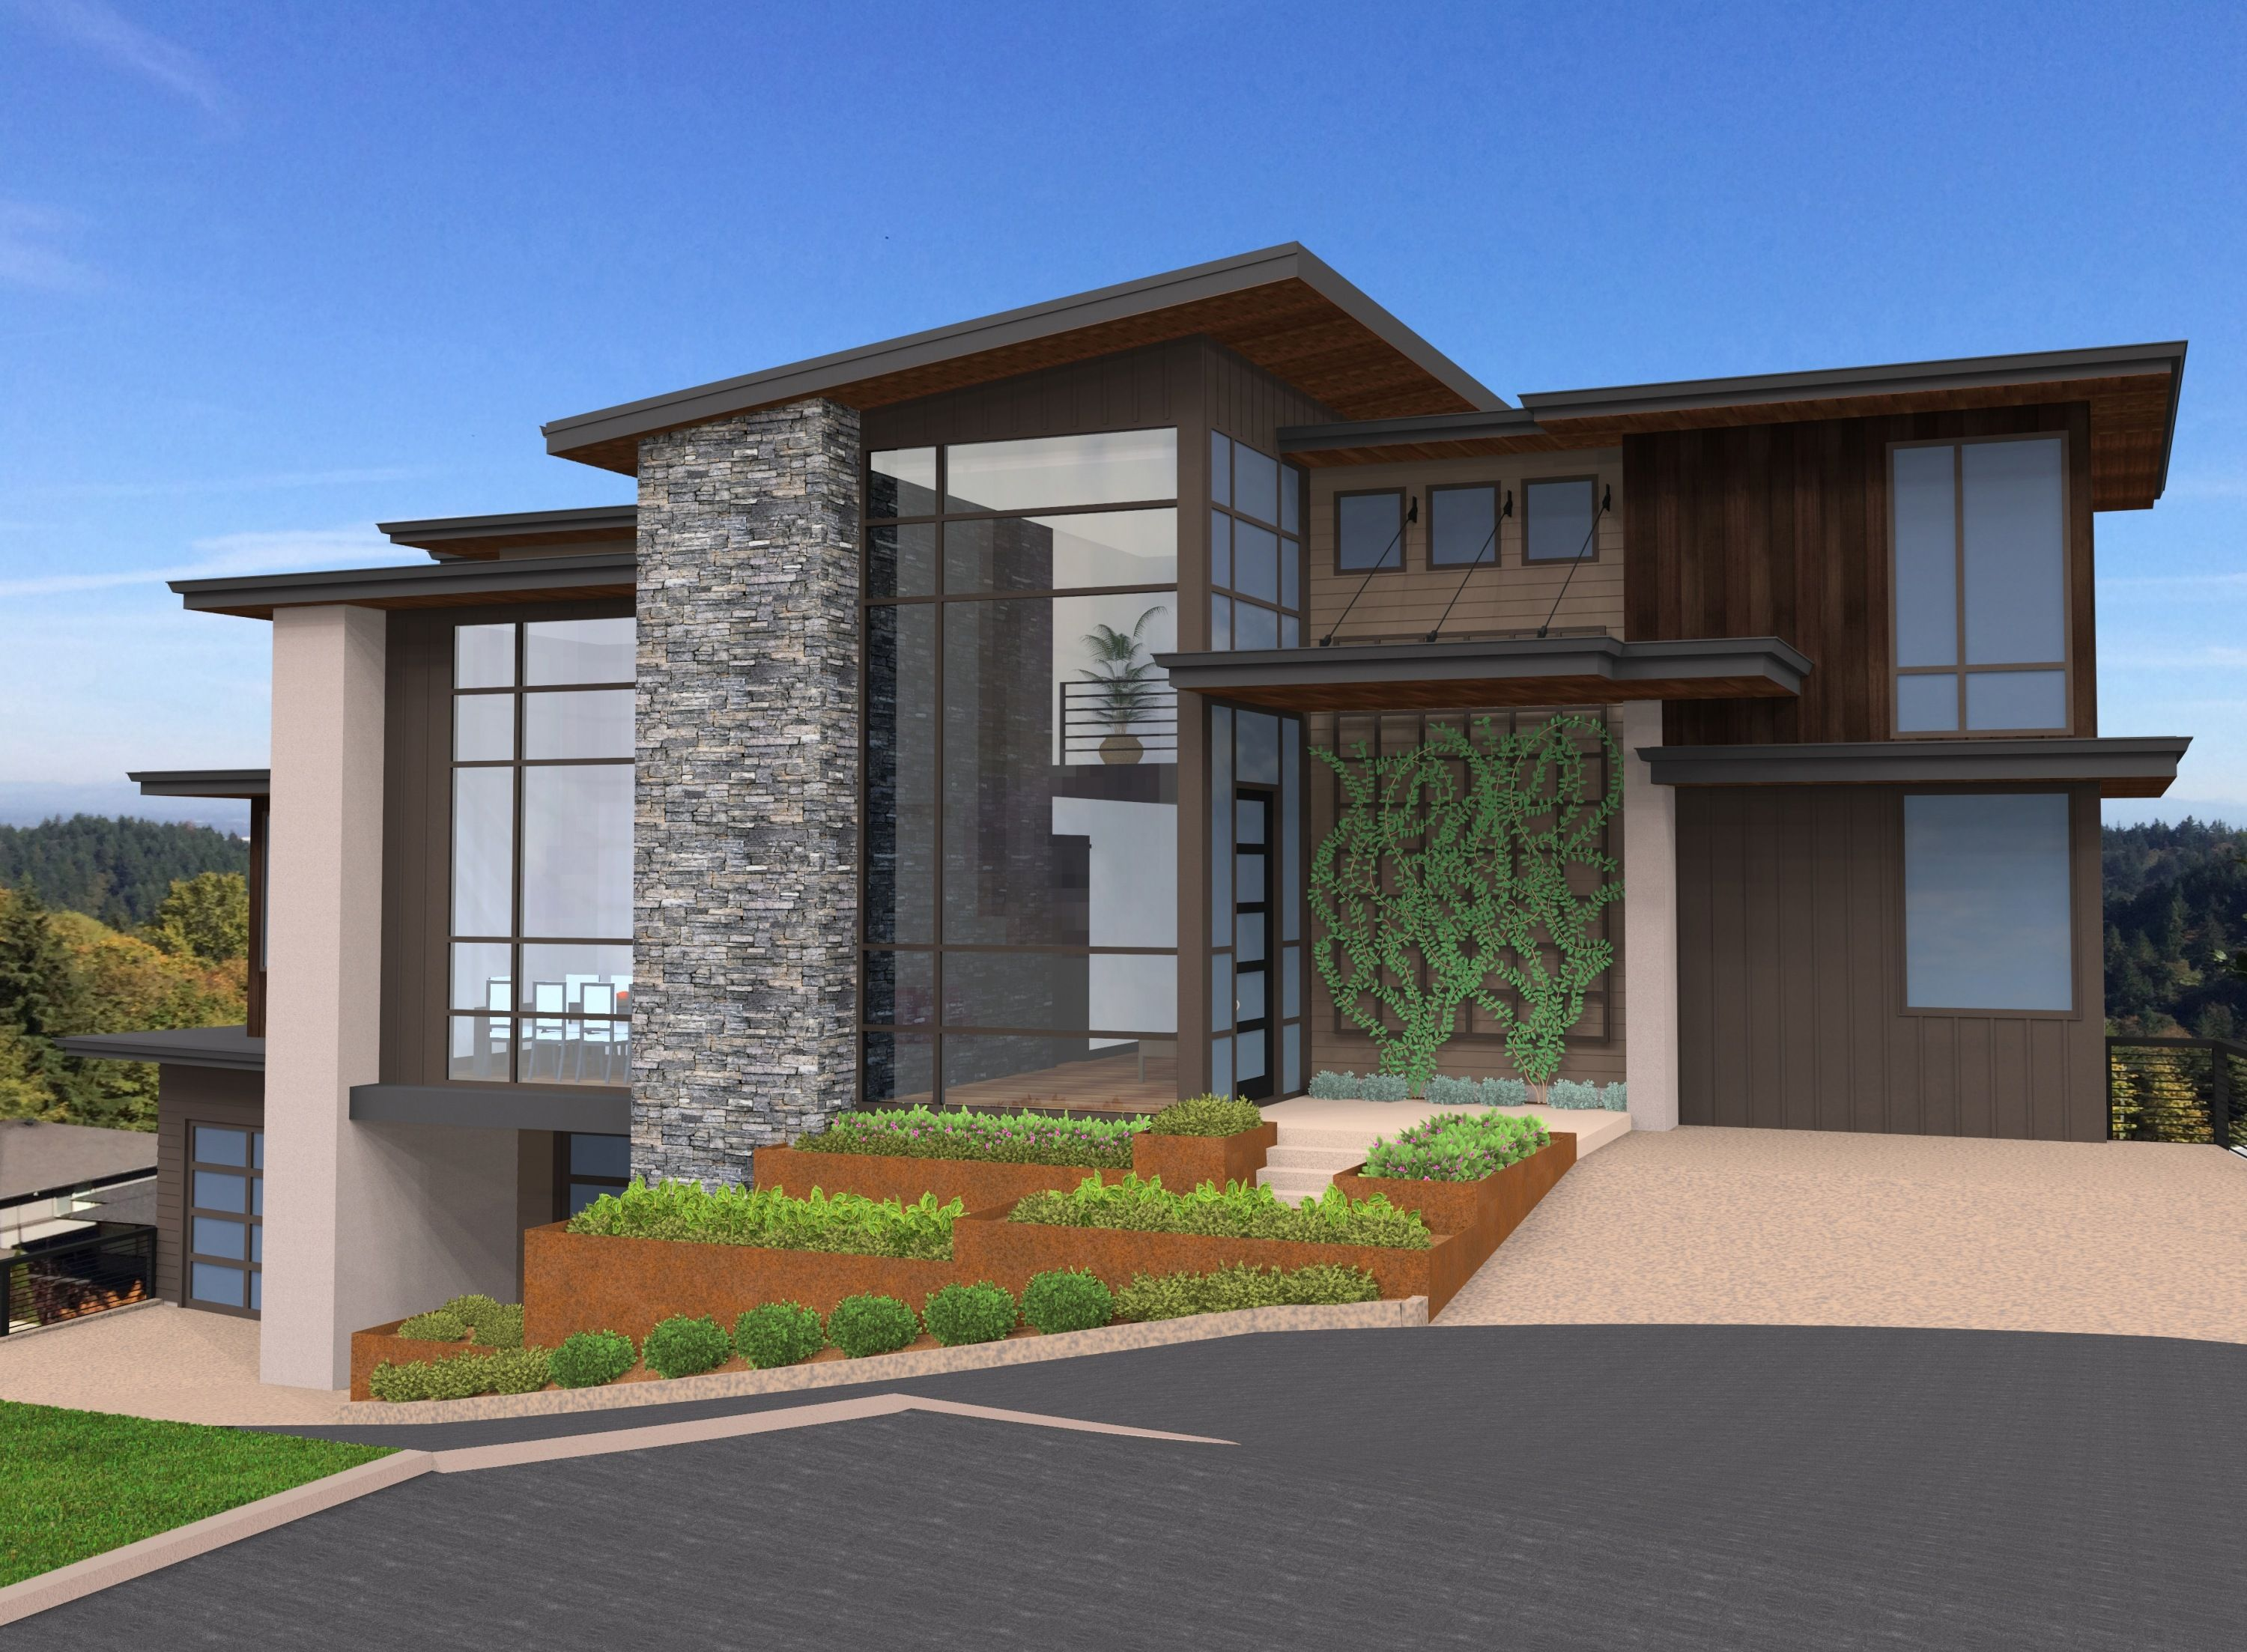 The Ultimate Modern House Plan For A Sloped Lot As Attractive As The Modern Exterior Is Modern Contemporary House Plans Modern House Plan Modern Floor Plans